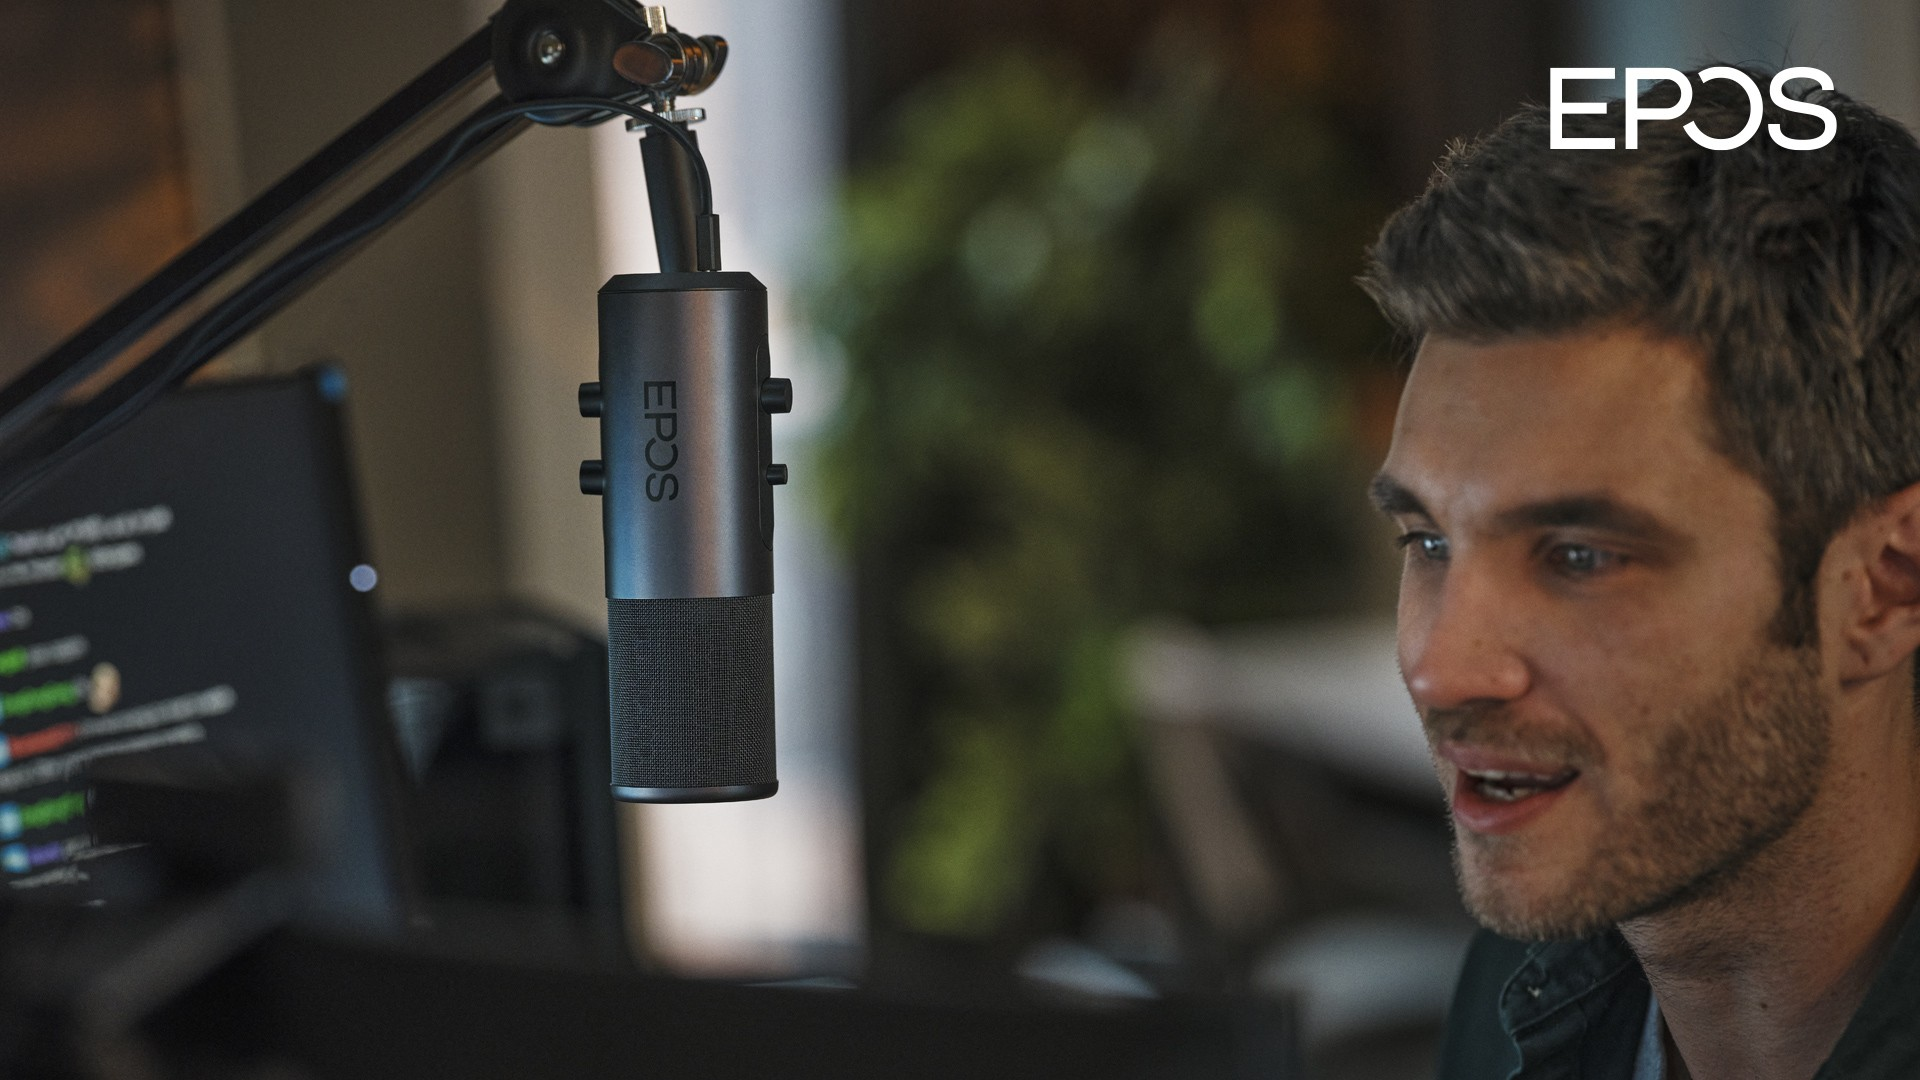 EPOS Delivers Studio Broadcast Quality With B20 Streaming Microphone for Gamers